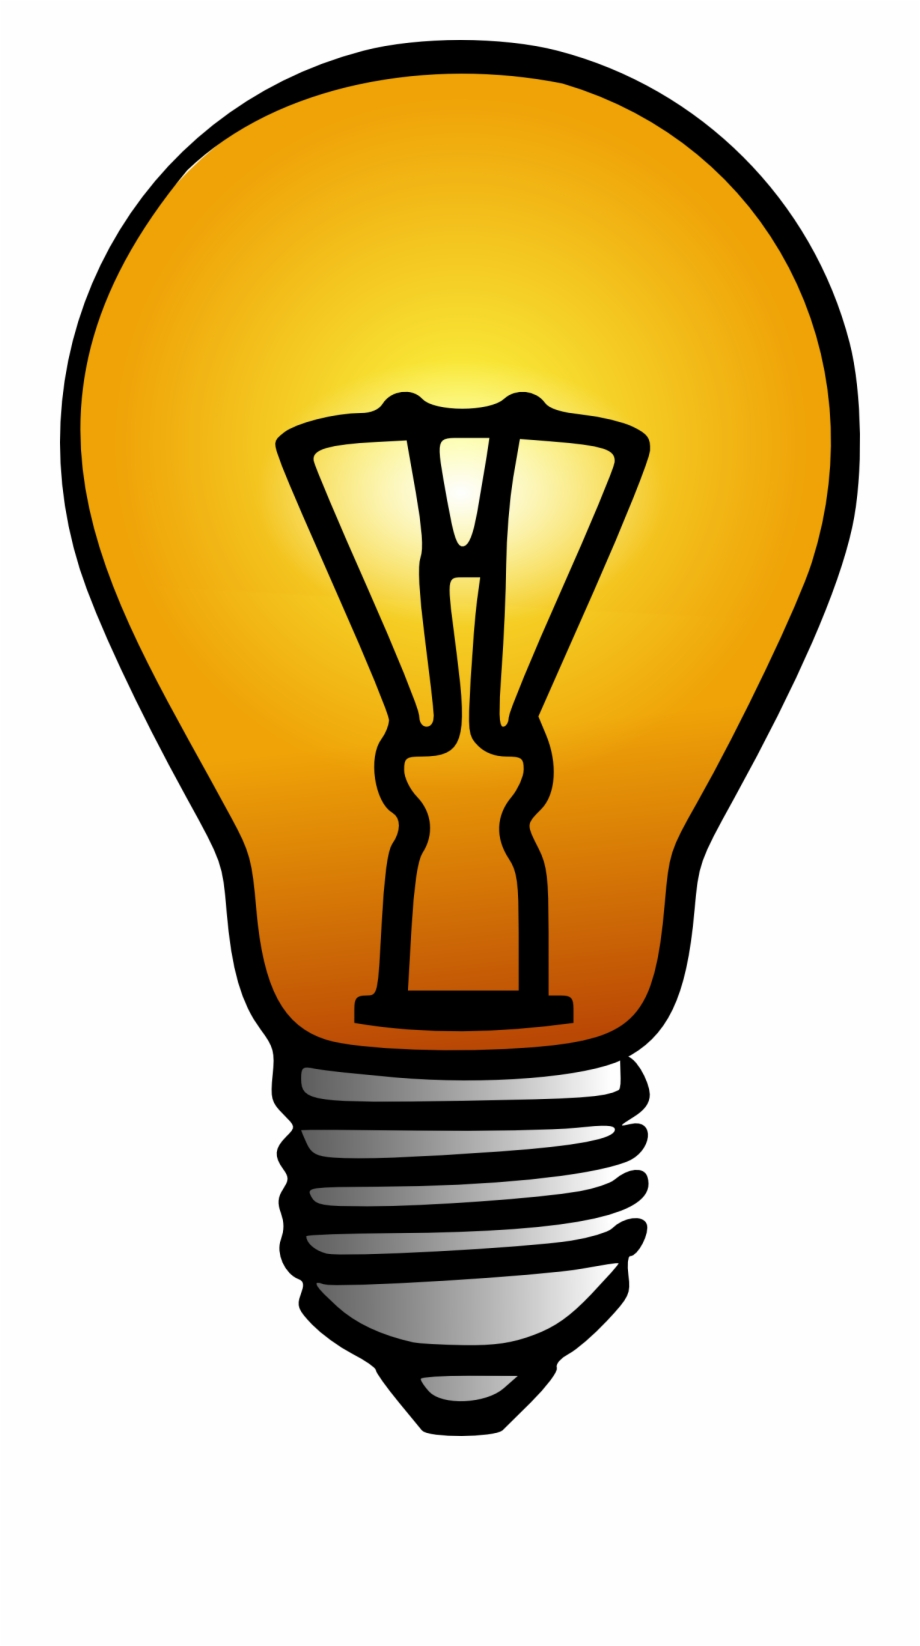 Top of light bub clipart image transparent stock Bulb Clipart Electric Bulb - Light Bulb Clip Art ... image transparent stock